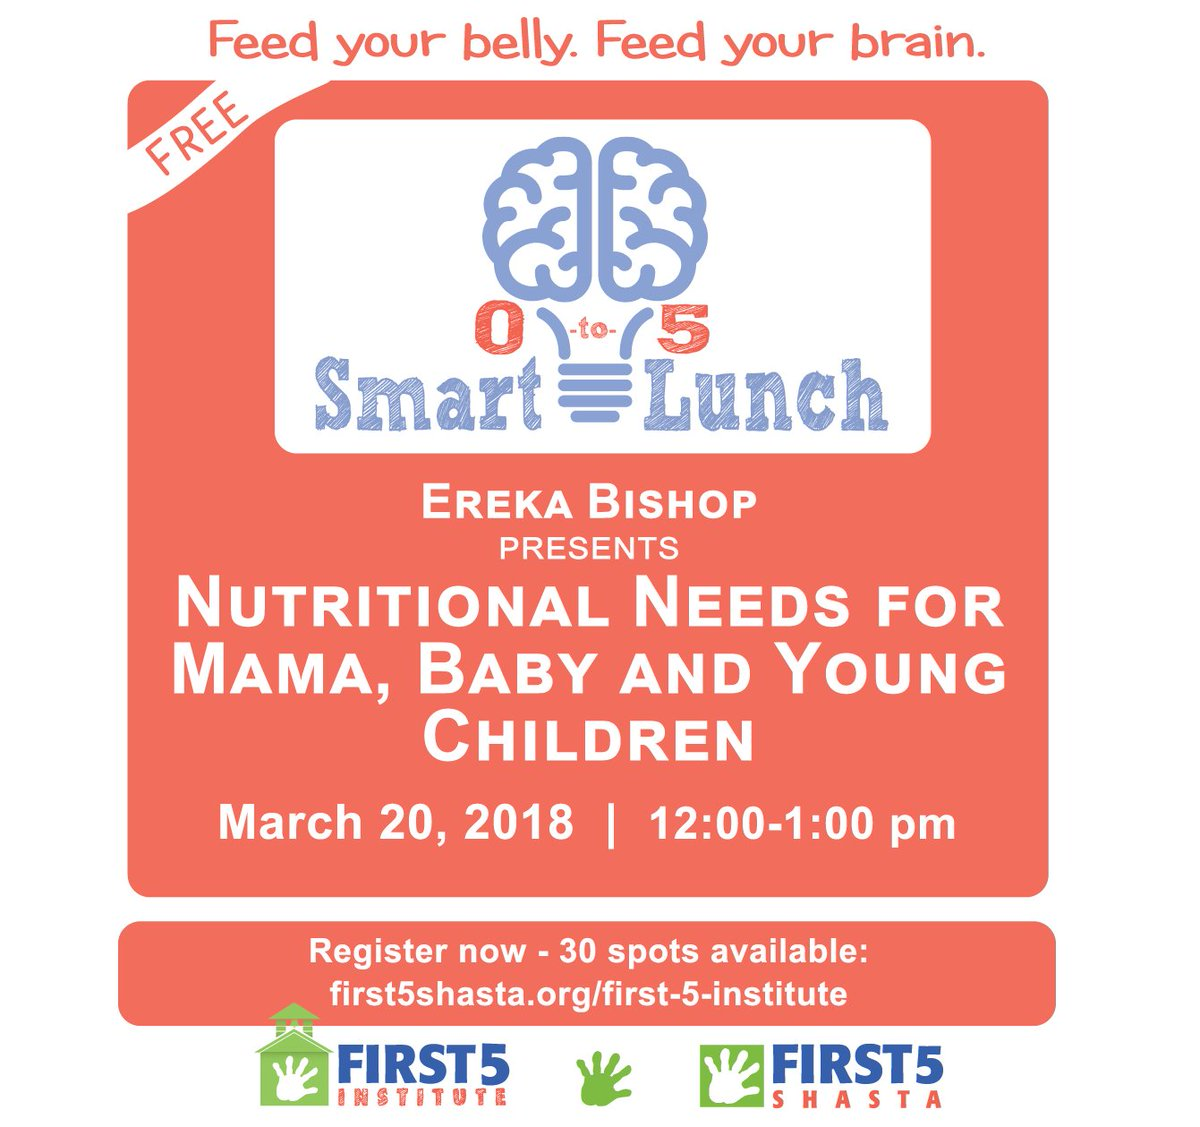 First 5 Shasta On Twitter Smartlunch One Little Hour And A Free Lunch To Learn More About The Best Nutrition For Pregnant Mamas And Little Guys Special Smart Lunch For National Nutrition